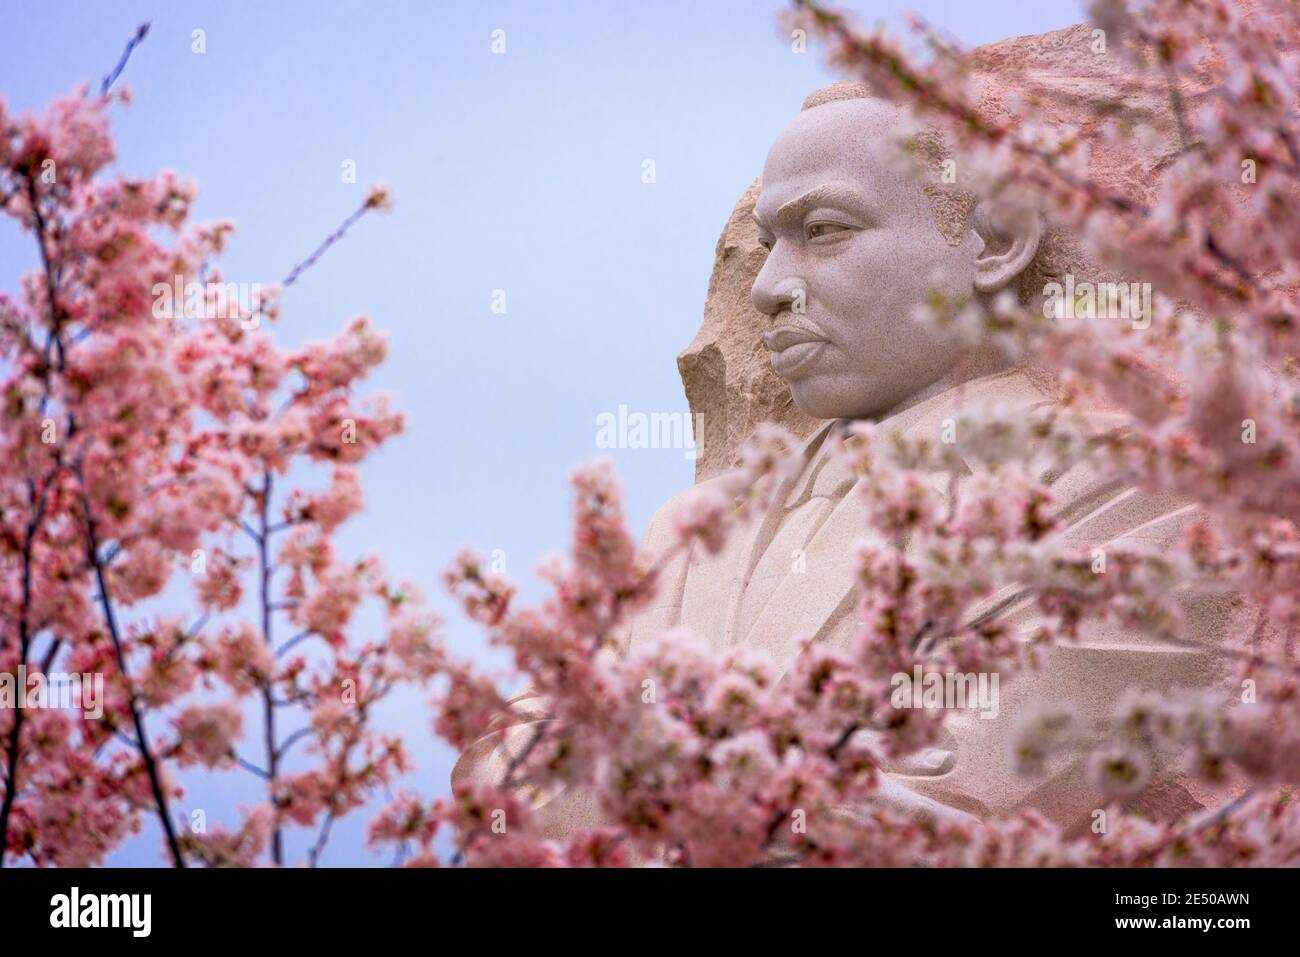 WASHINGTON - APRIL 8, 2015: The memorial to the civil rights leader Martin Luther King, Jr. during the spring season in West Potomac Park. Stock Photo